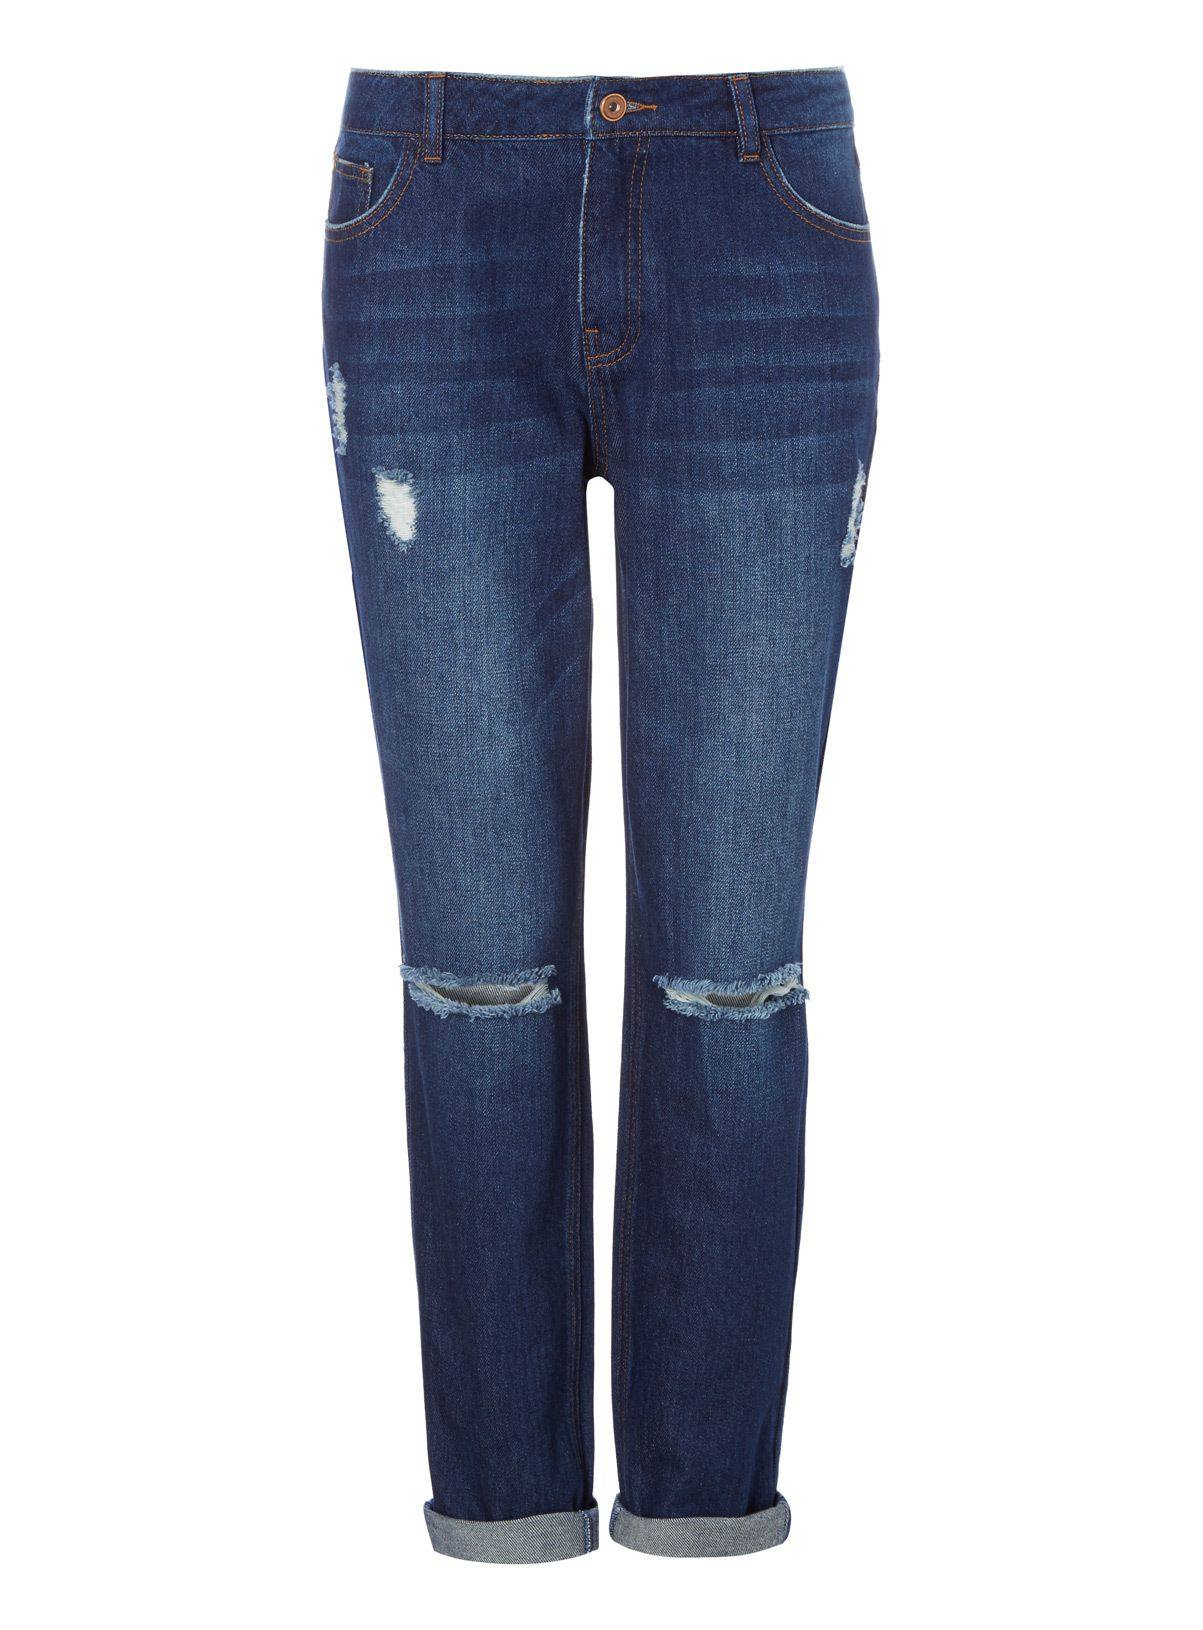 An allseason staple our boyfriend jeans are crafted with